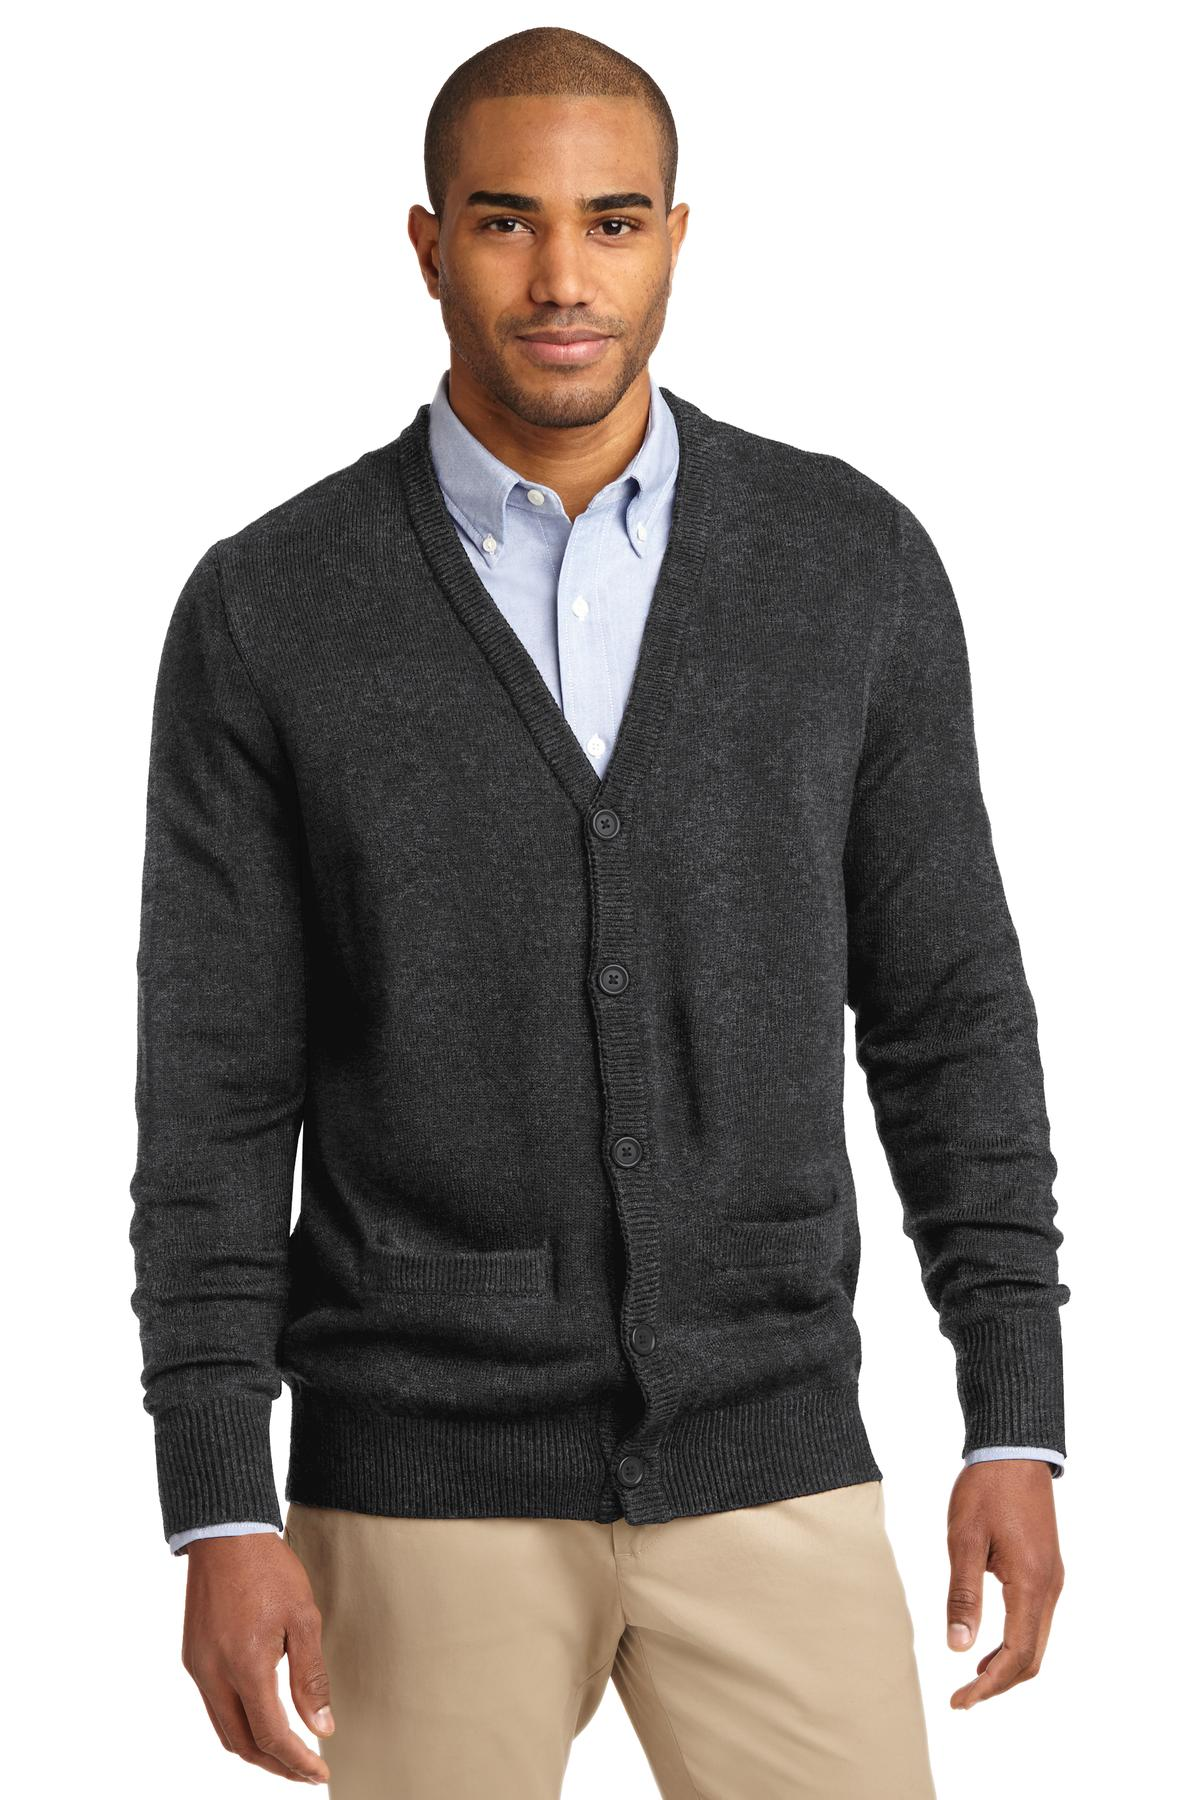 Port Authority Value V-Neck Cardigan Sweater with Pockets